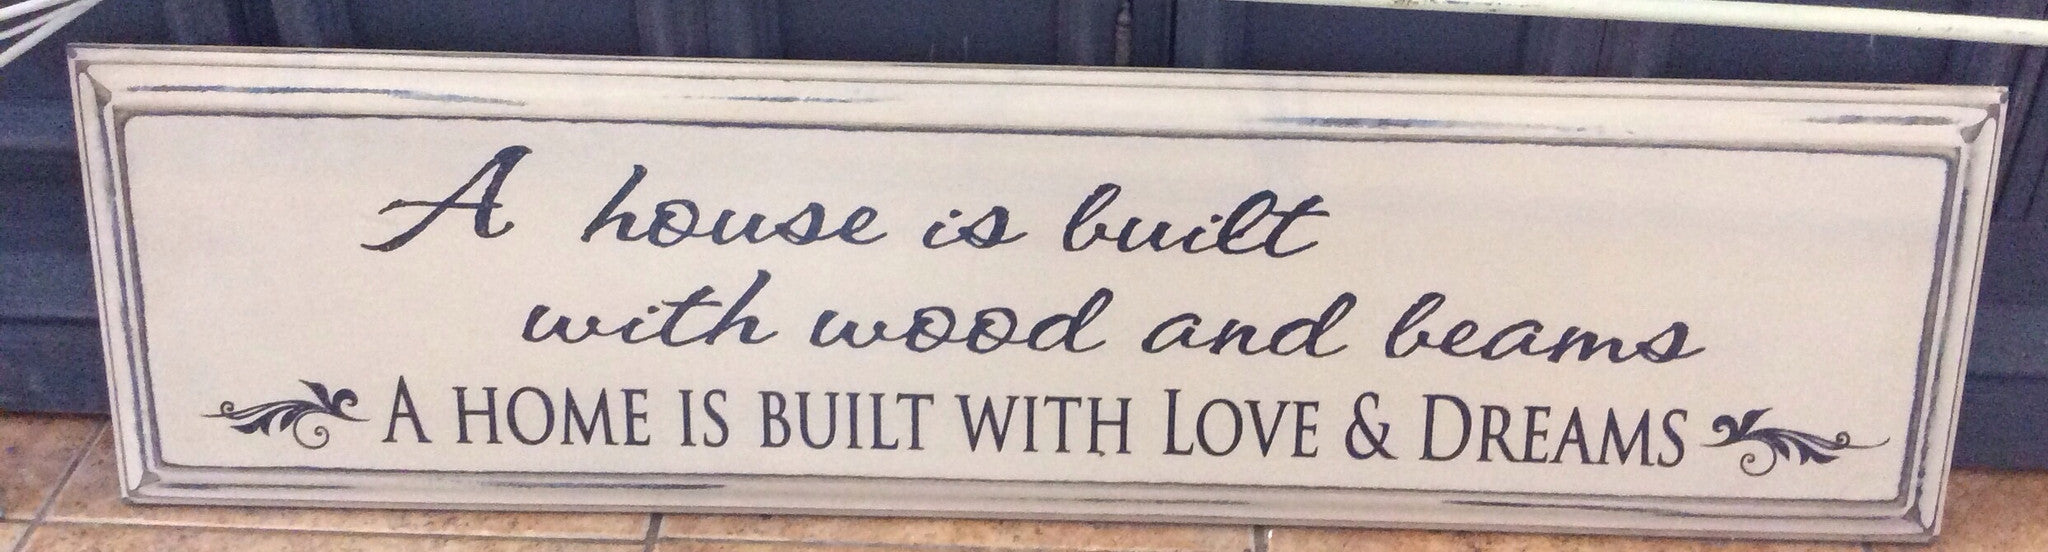 "A House is Built with Wood and Beams- A Home is Built with Love and Dreams- Painted Wood Sign- 9 1/4"" x 35 3/4""- Cream with Black Letters"